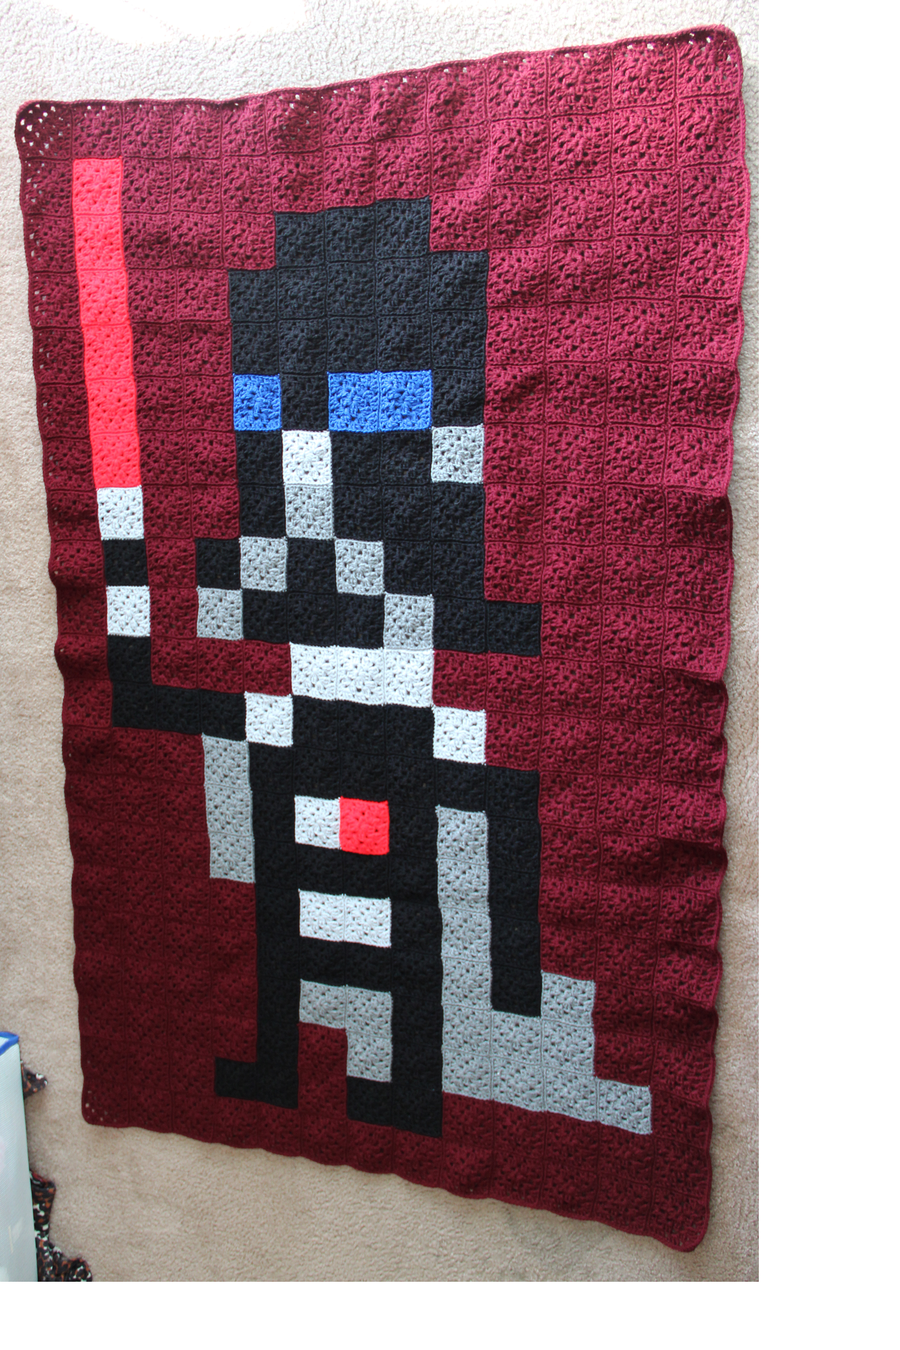 Darth Vader pixel crochet blanket by ~InAnotherCastle on deviantART ...